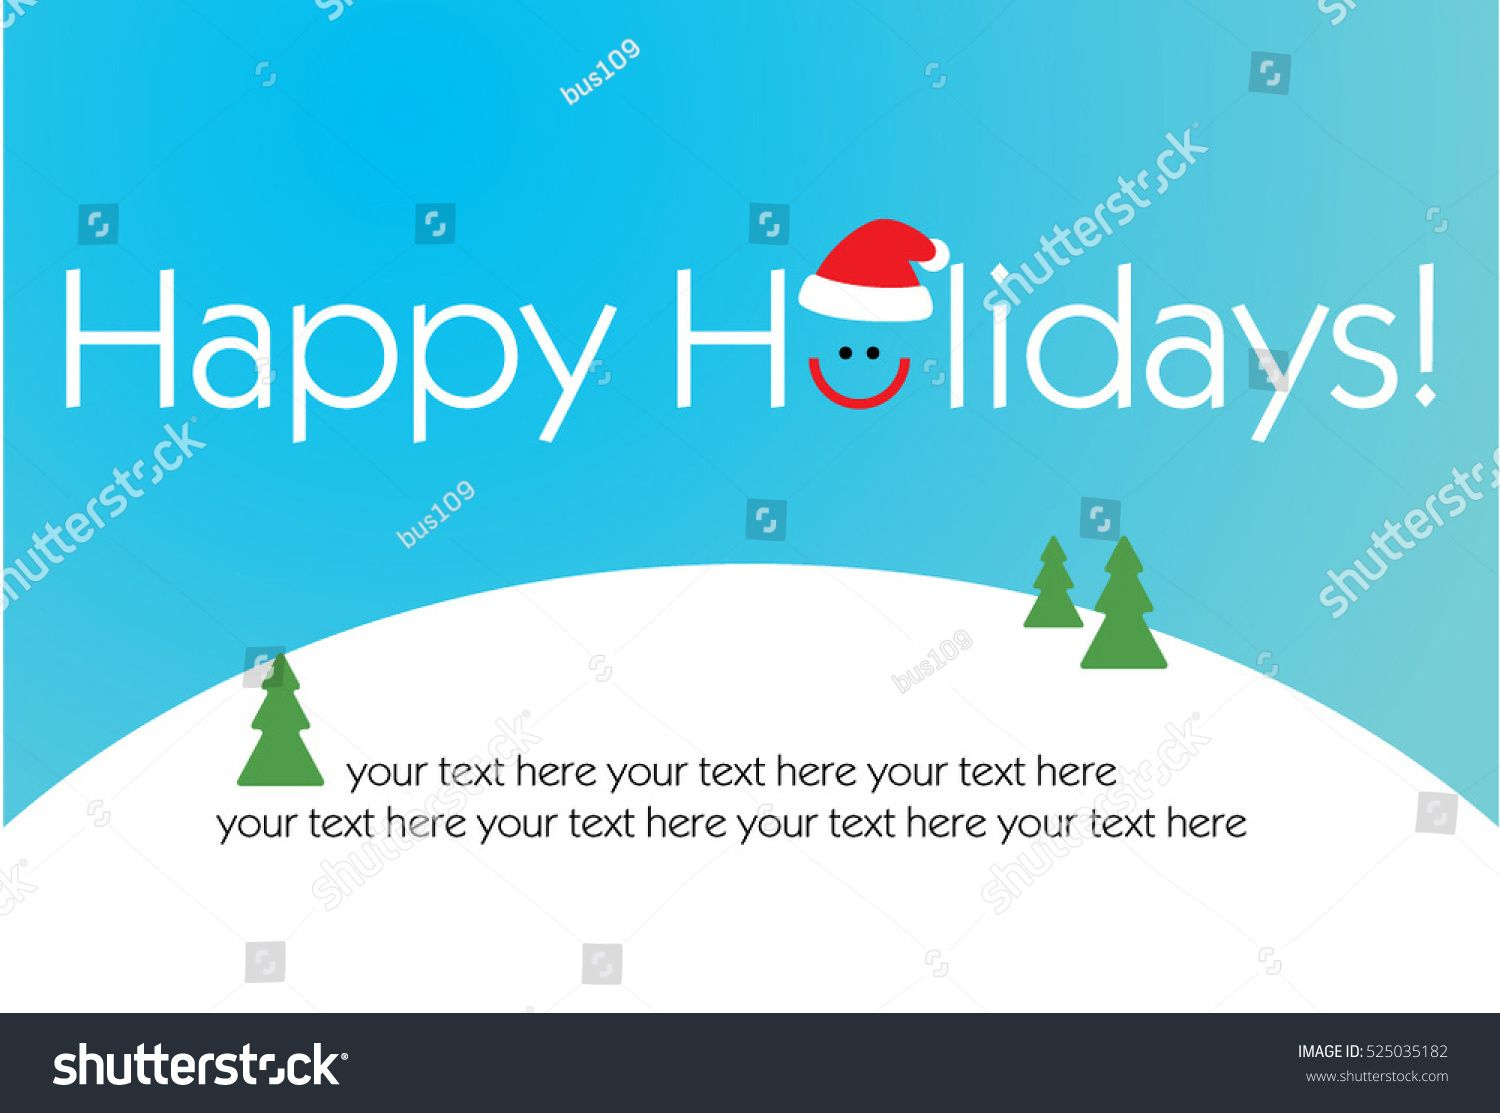 2019 Happy New Year Happy Holidays Card Text Design With Smile And Santa Hat Vector Illustration Ad Affil Happy Holiday Cards Text Design Happy New Year